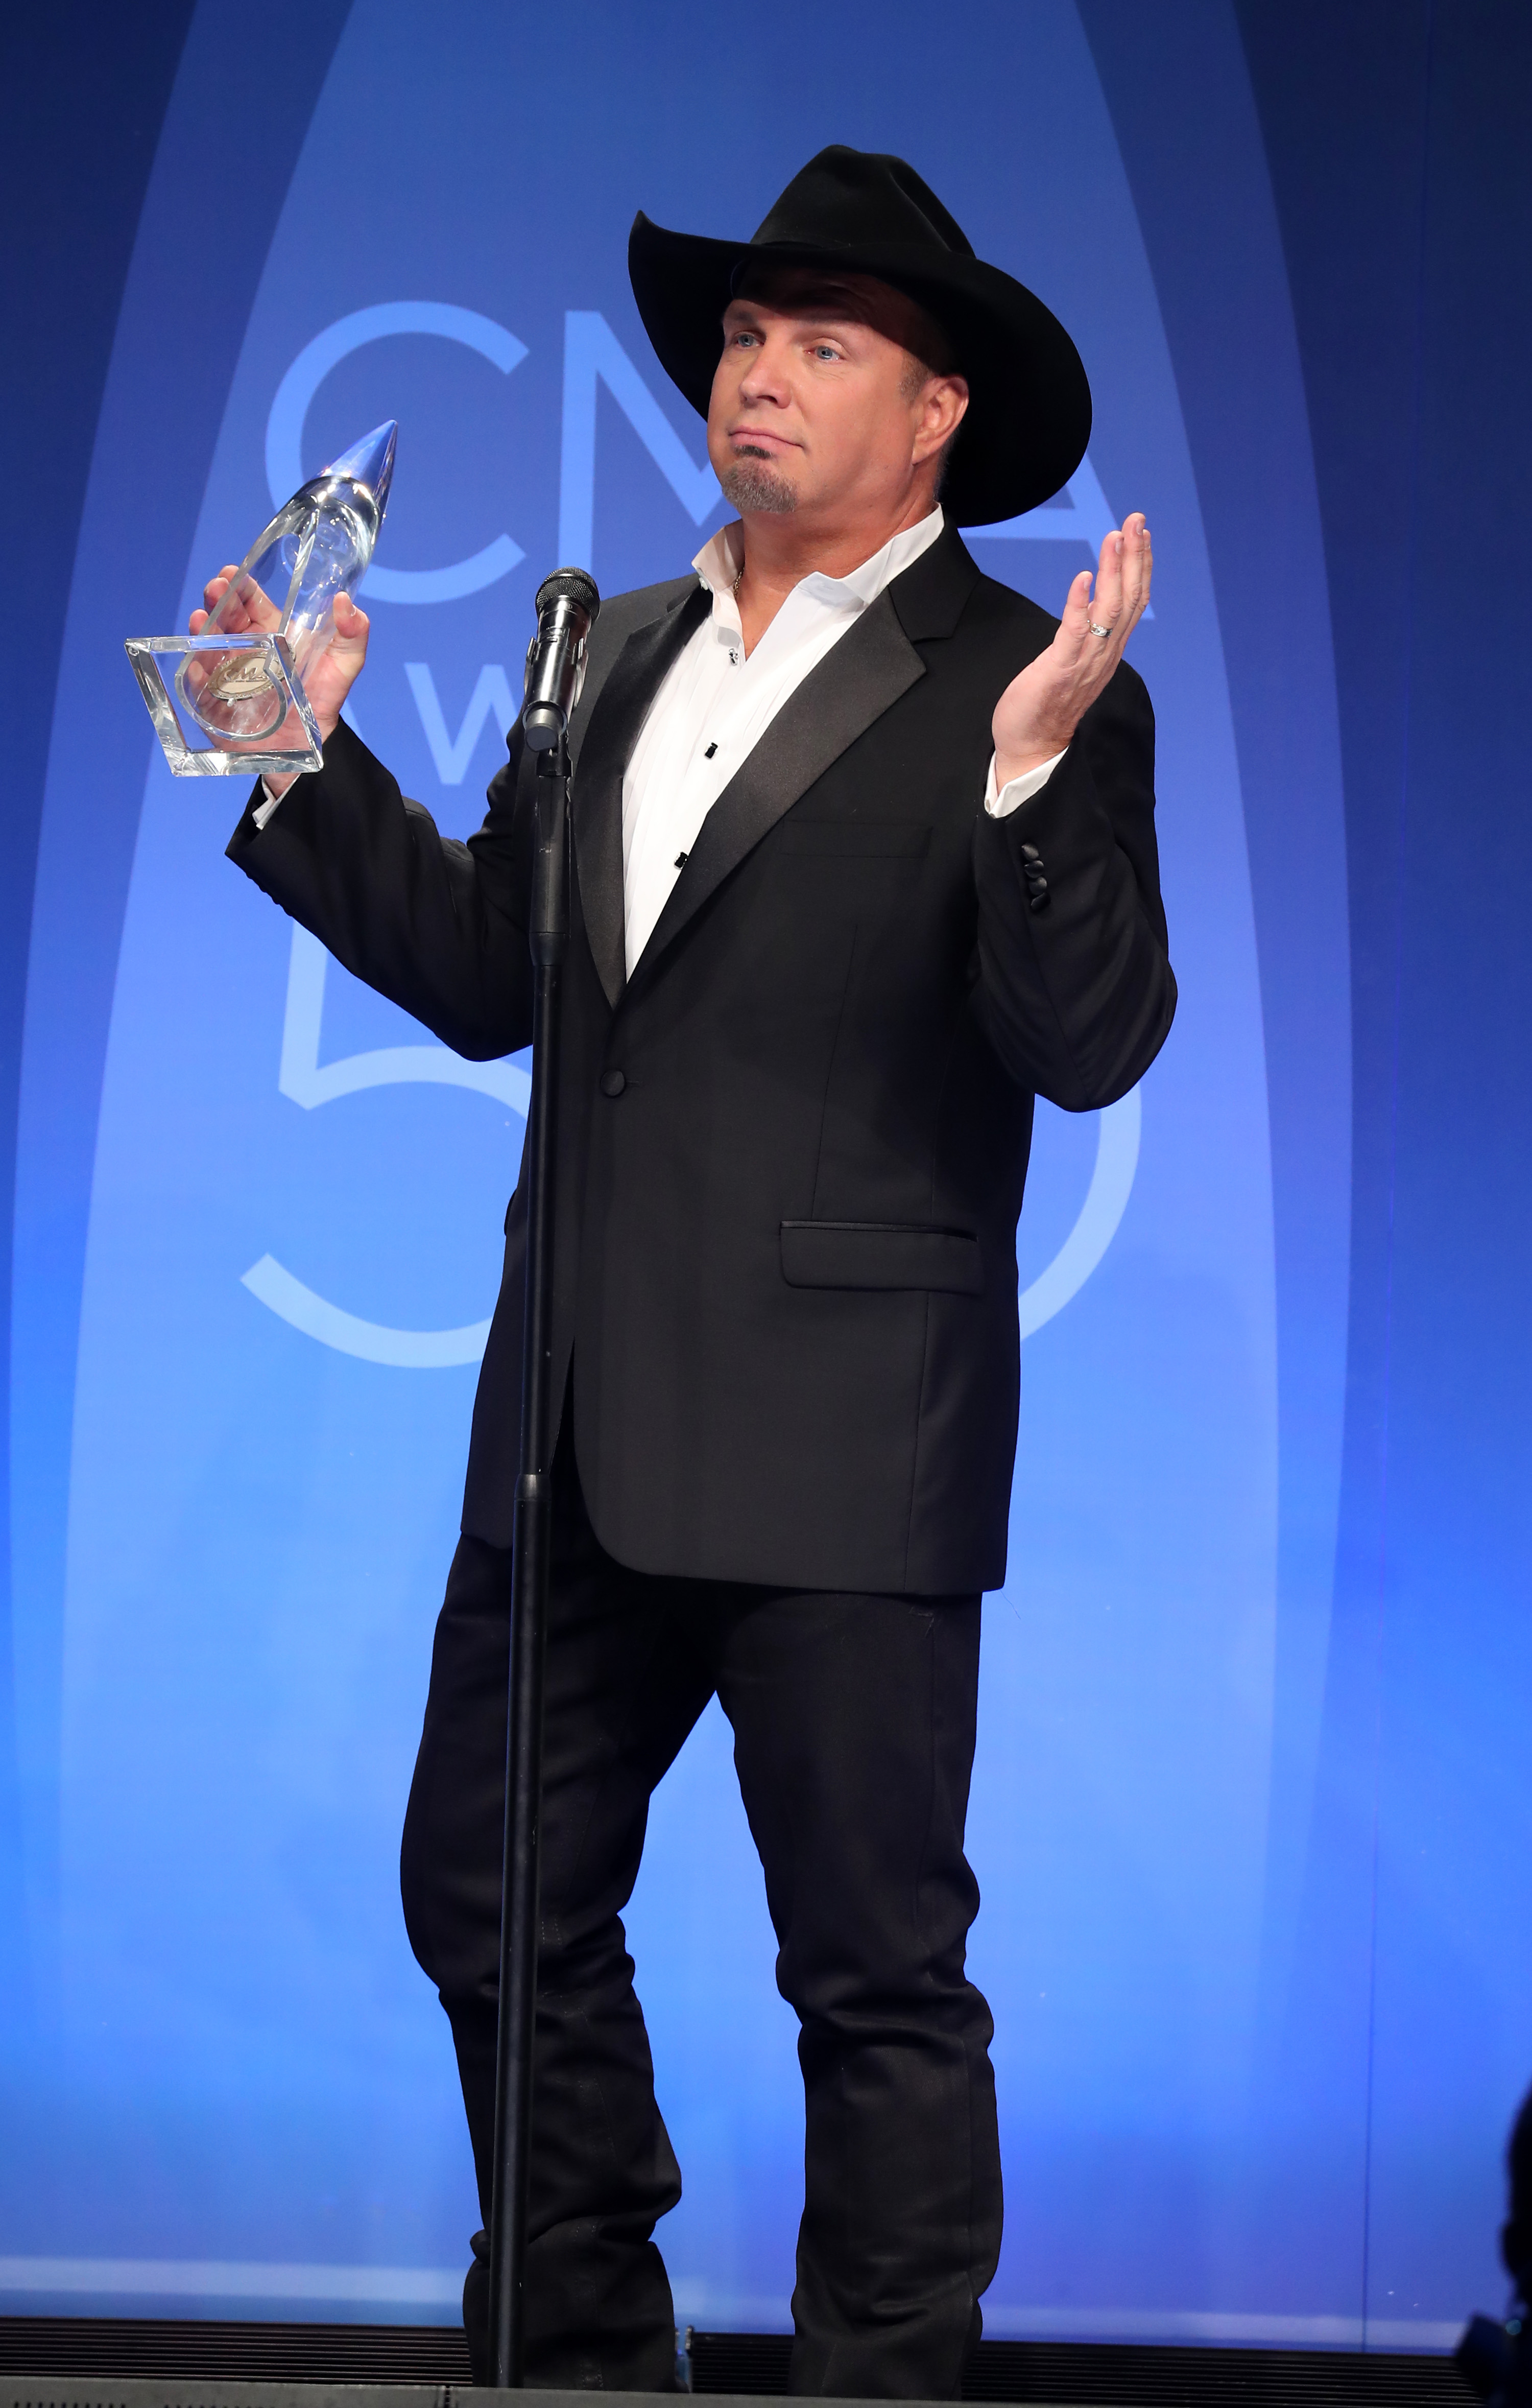 50th Annual CMA Awards Press Room at Brigestone Arena - Press Room                                    Featuring: Garth Brooks                  Where: Nashville, Tennessee, United States                  When: 02 Nov 2016                  Credit: Judy Eddy/WENN.com